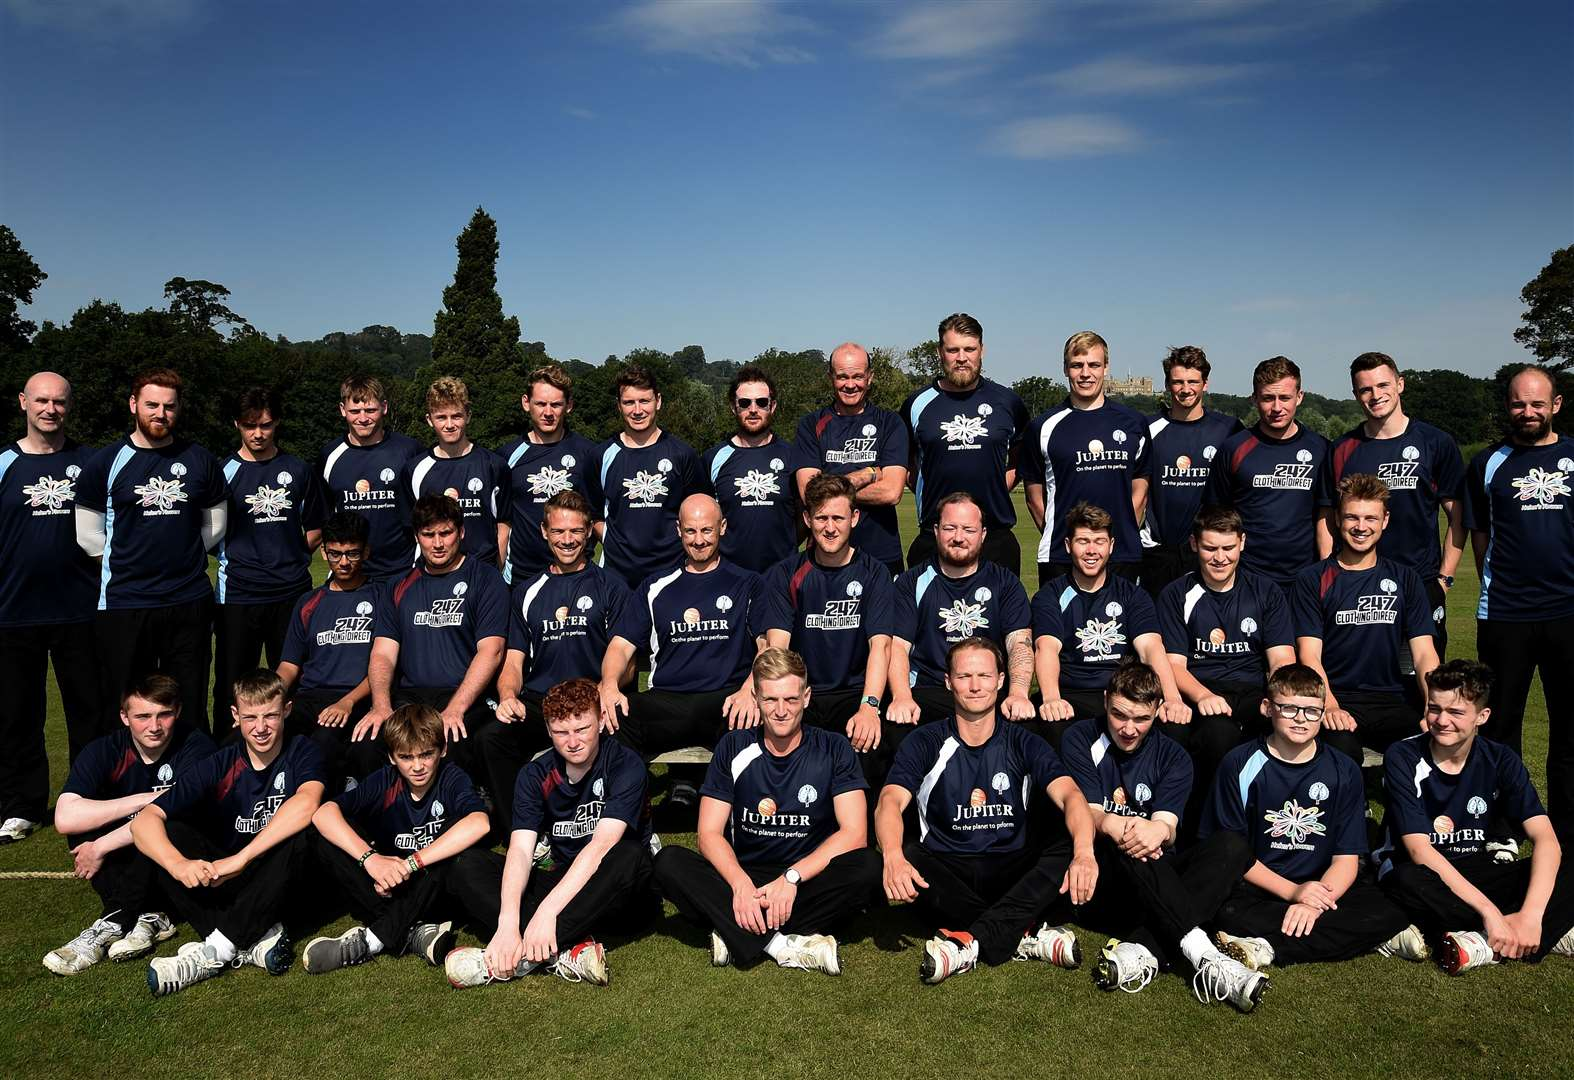 Village cricket club holds annual charity T20